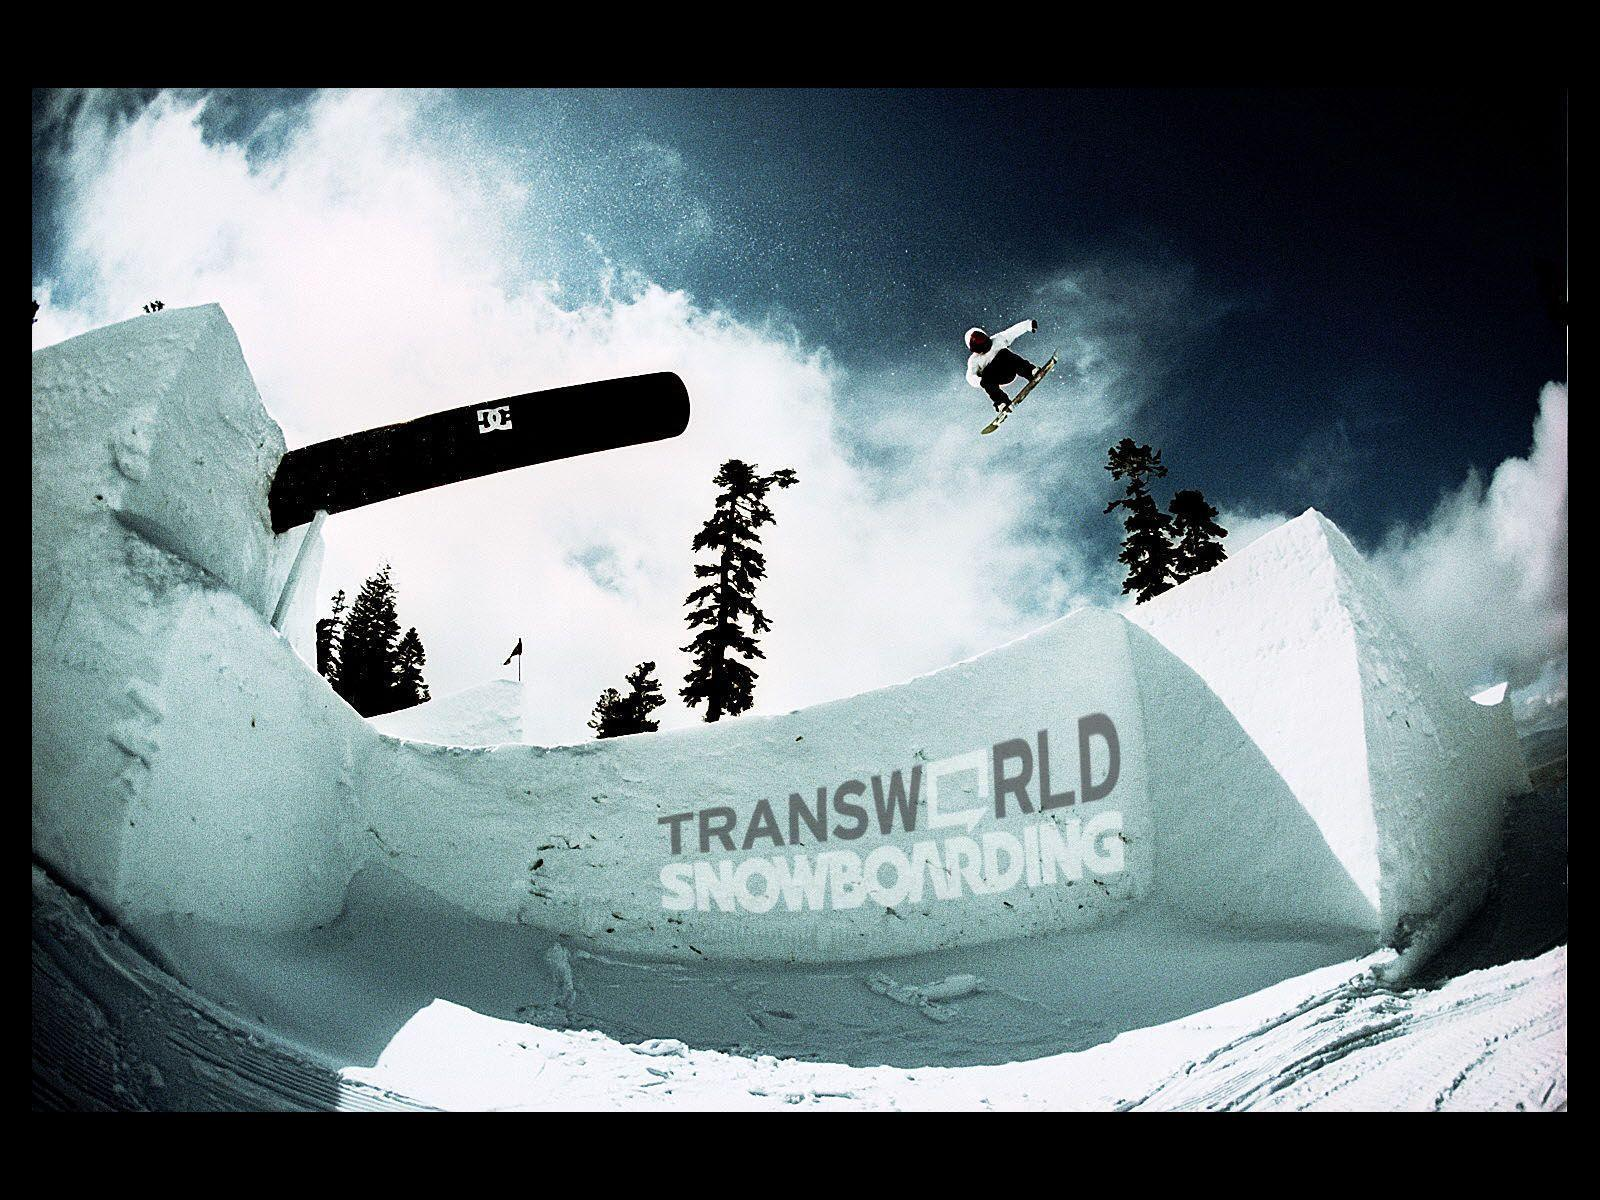 Extreme Snowboarding Wallpaper · Snowboarding Wallpaper | Best ...